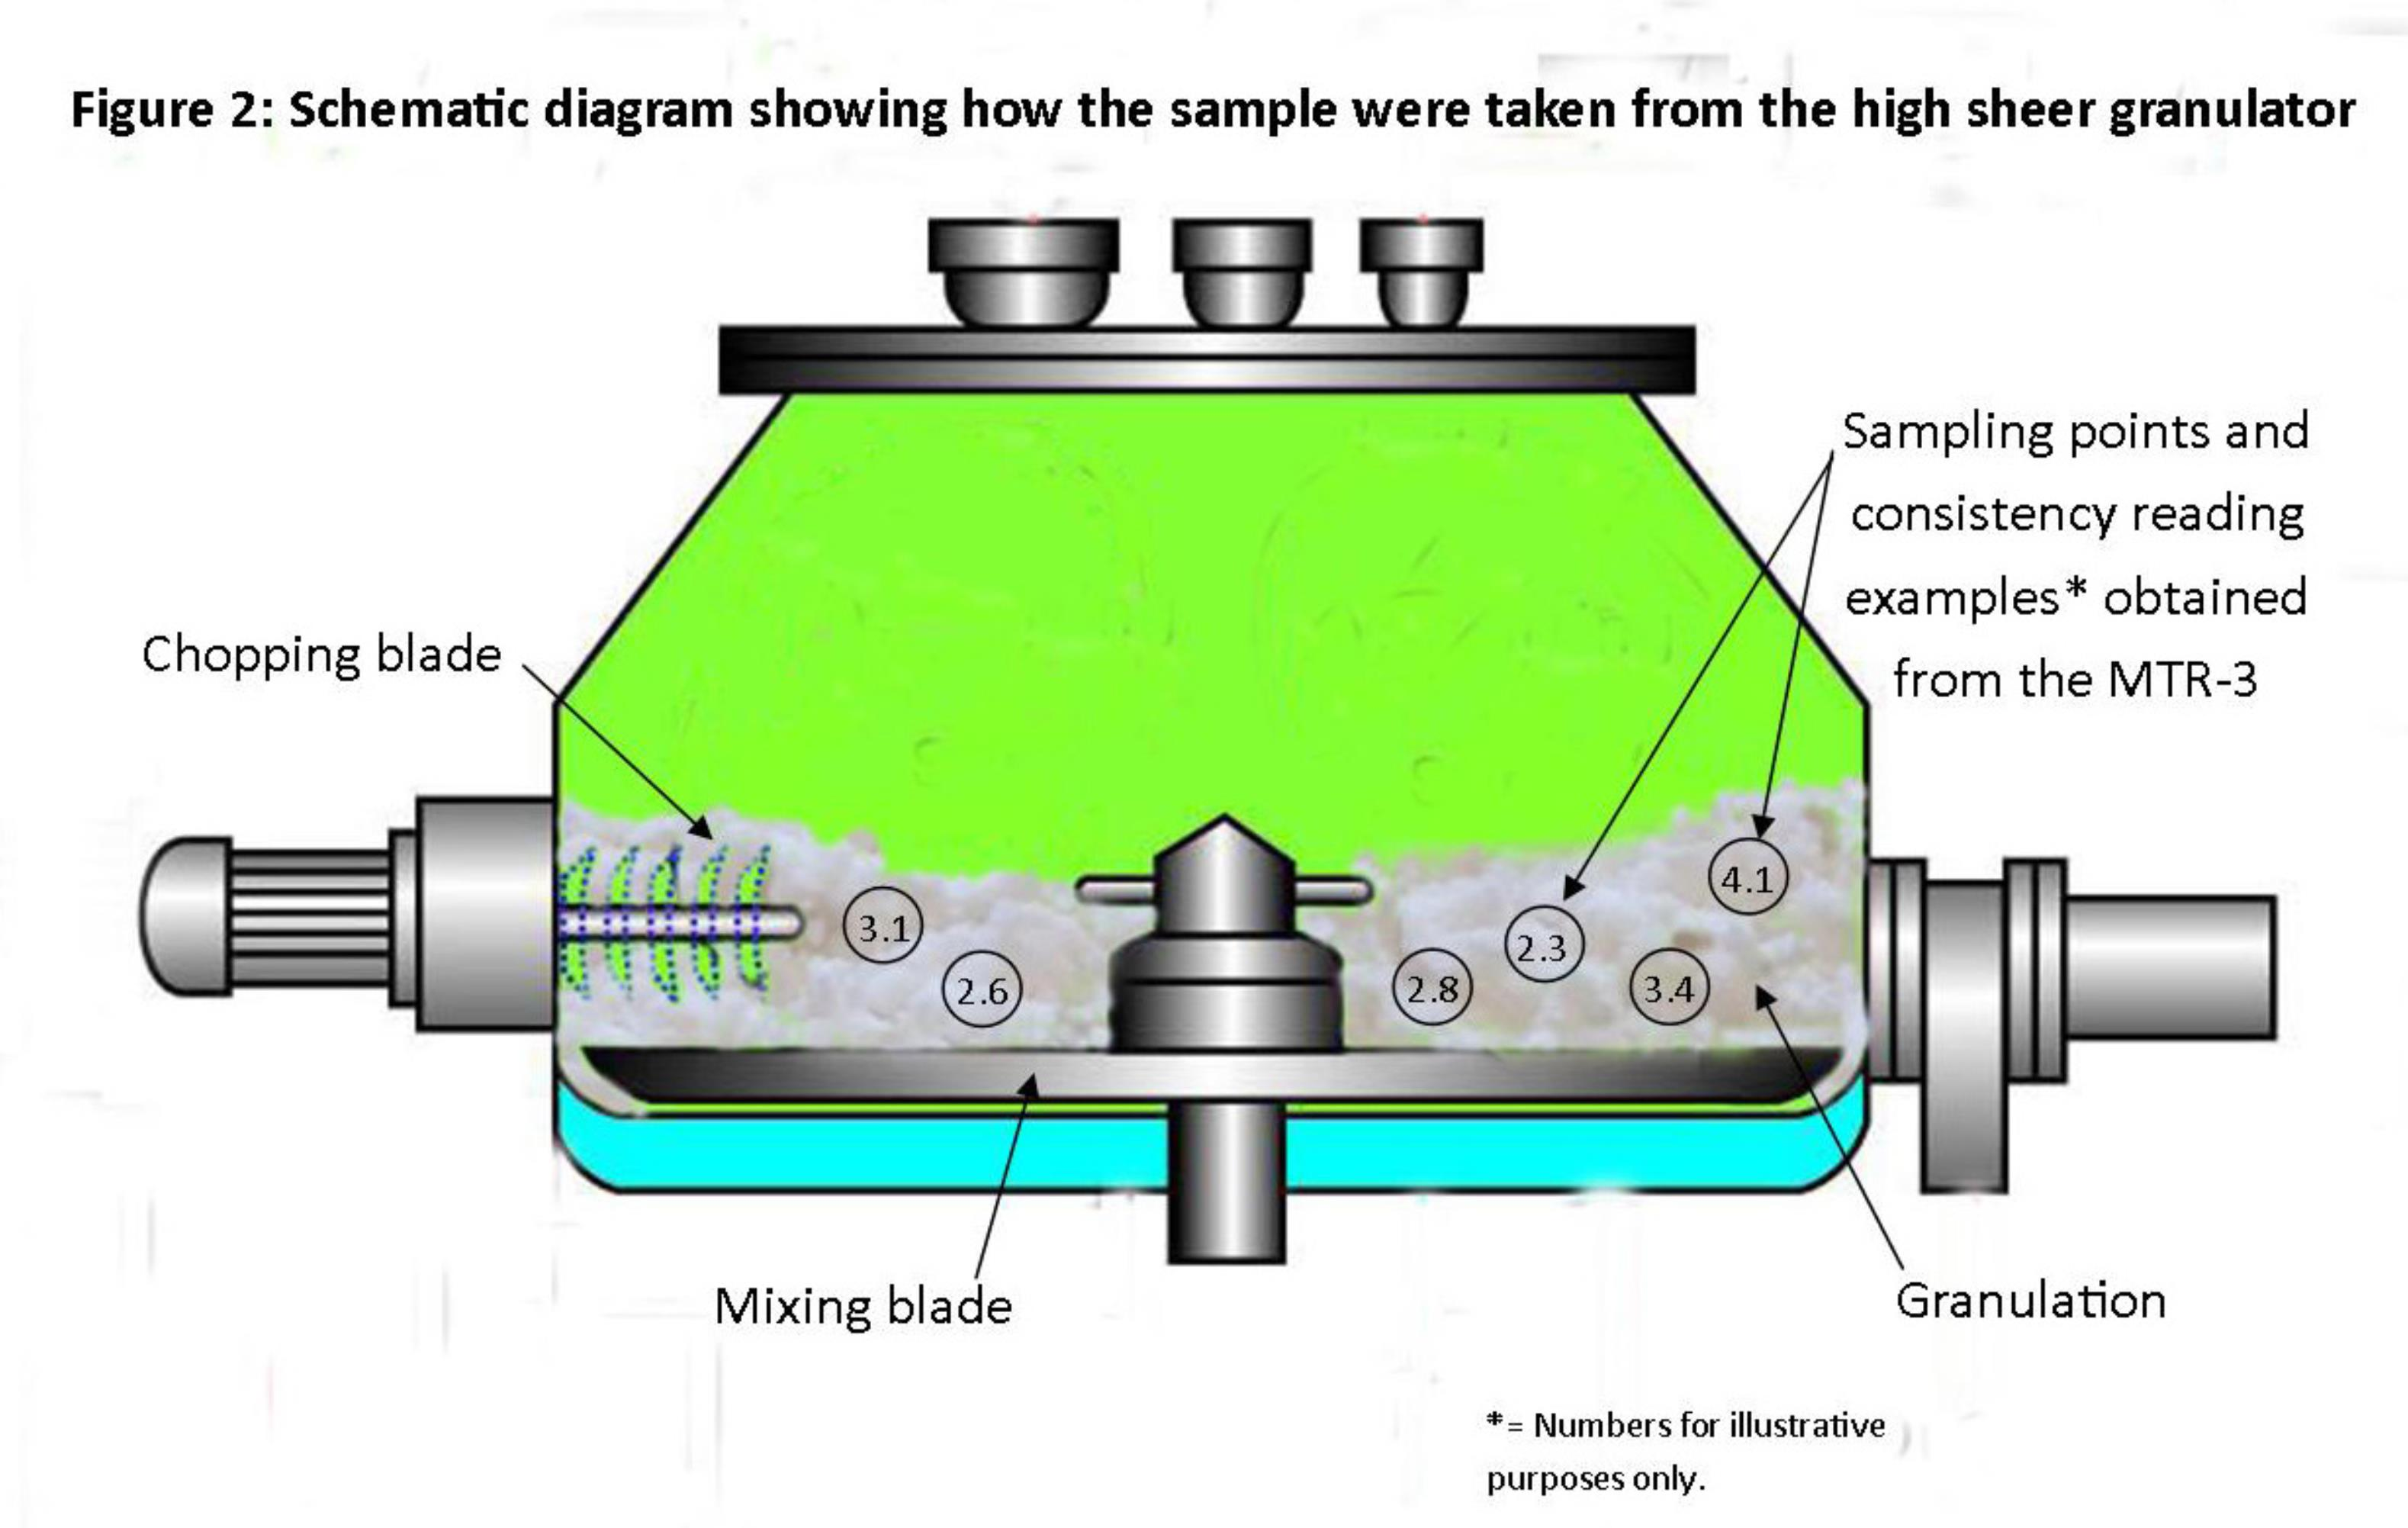 Schematic diagram showing how the samples were taken from the high shear granulator